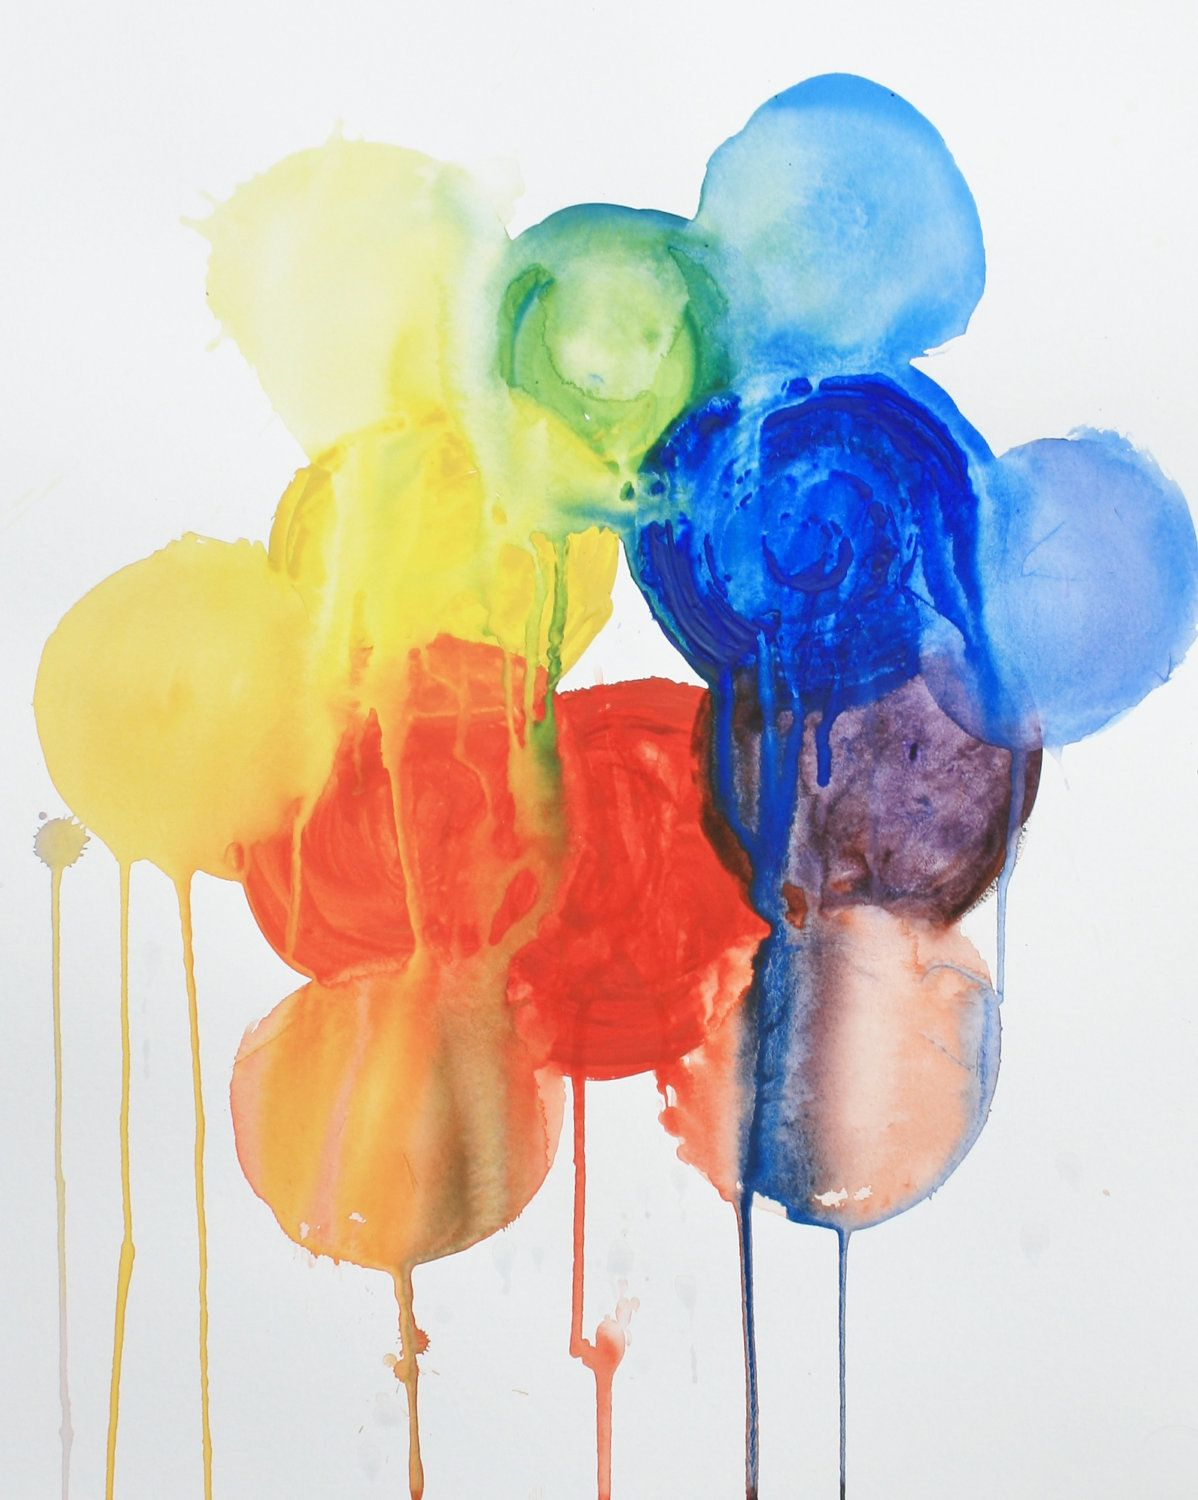 Rainbow Balloons Mixing Colors Print From Original